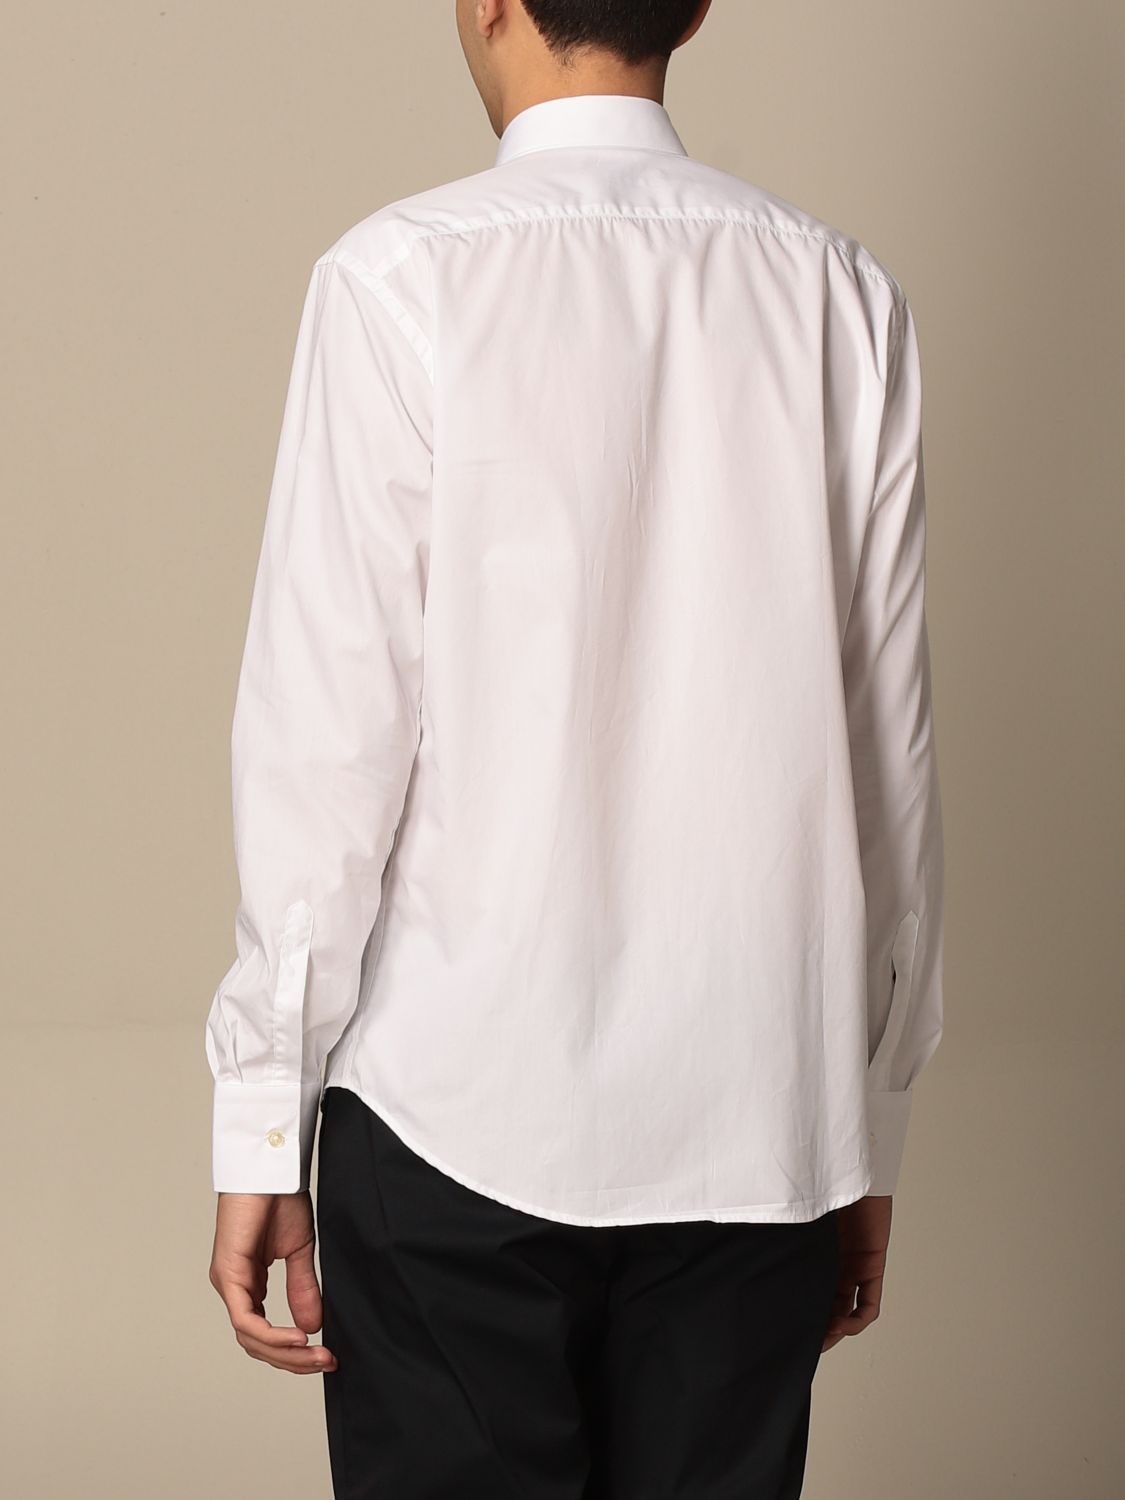 Chemise Brian Dales Chemises: Chemise homme Brian Dales Camicie blanc 2